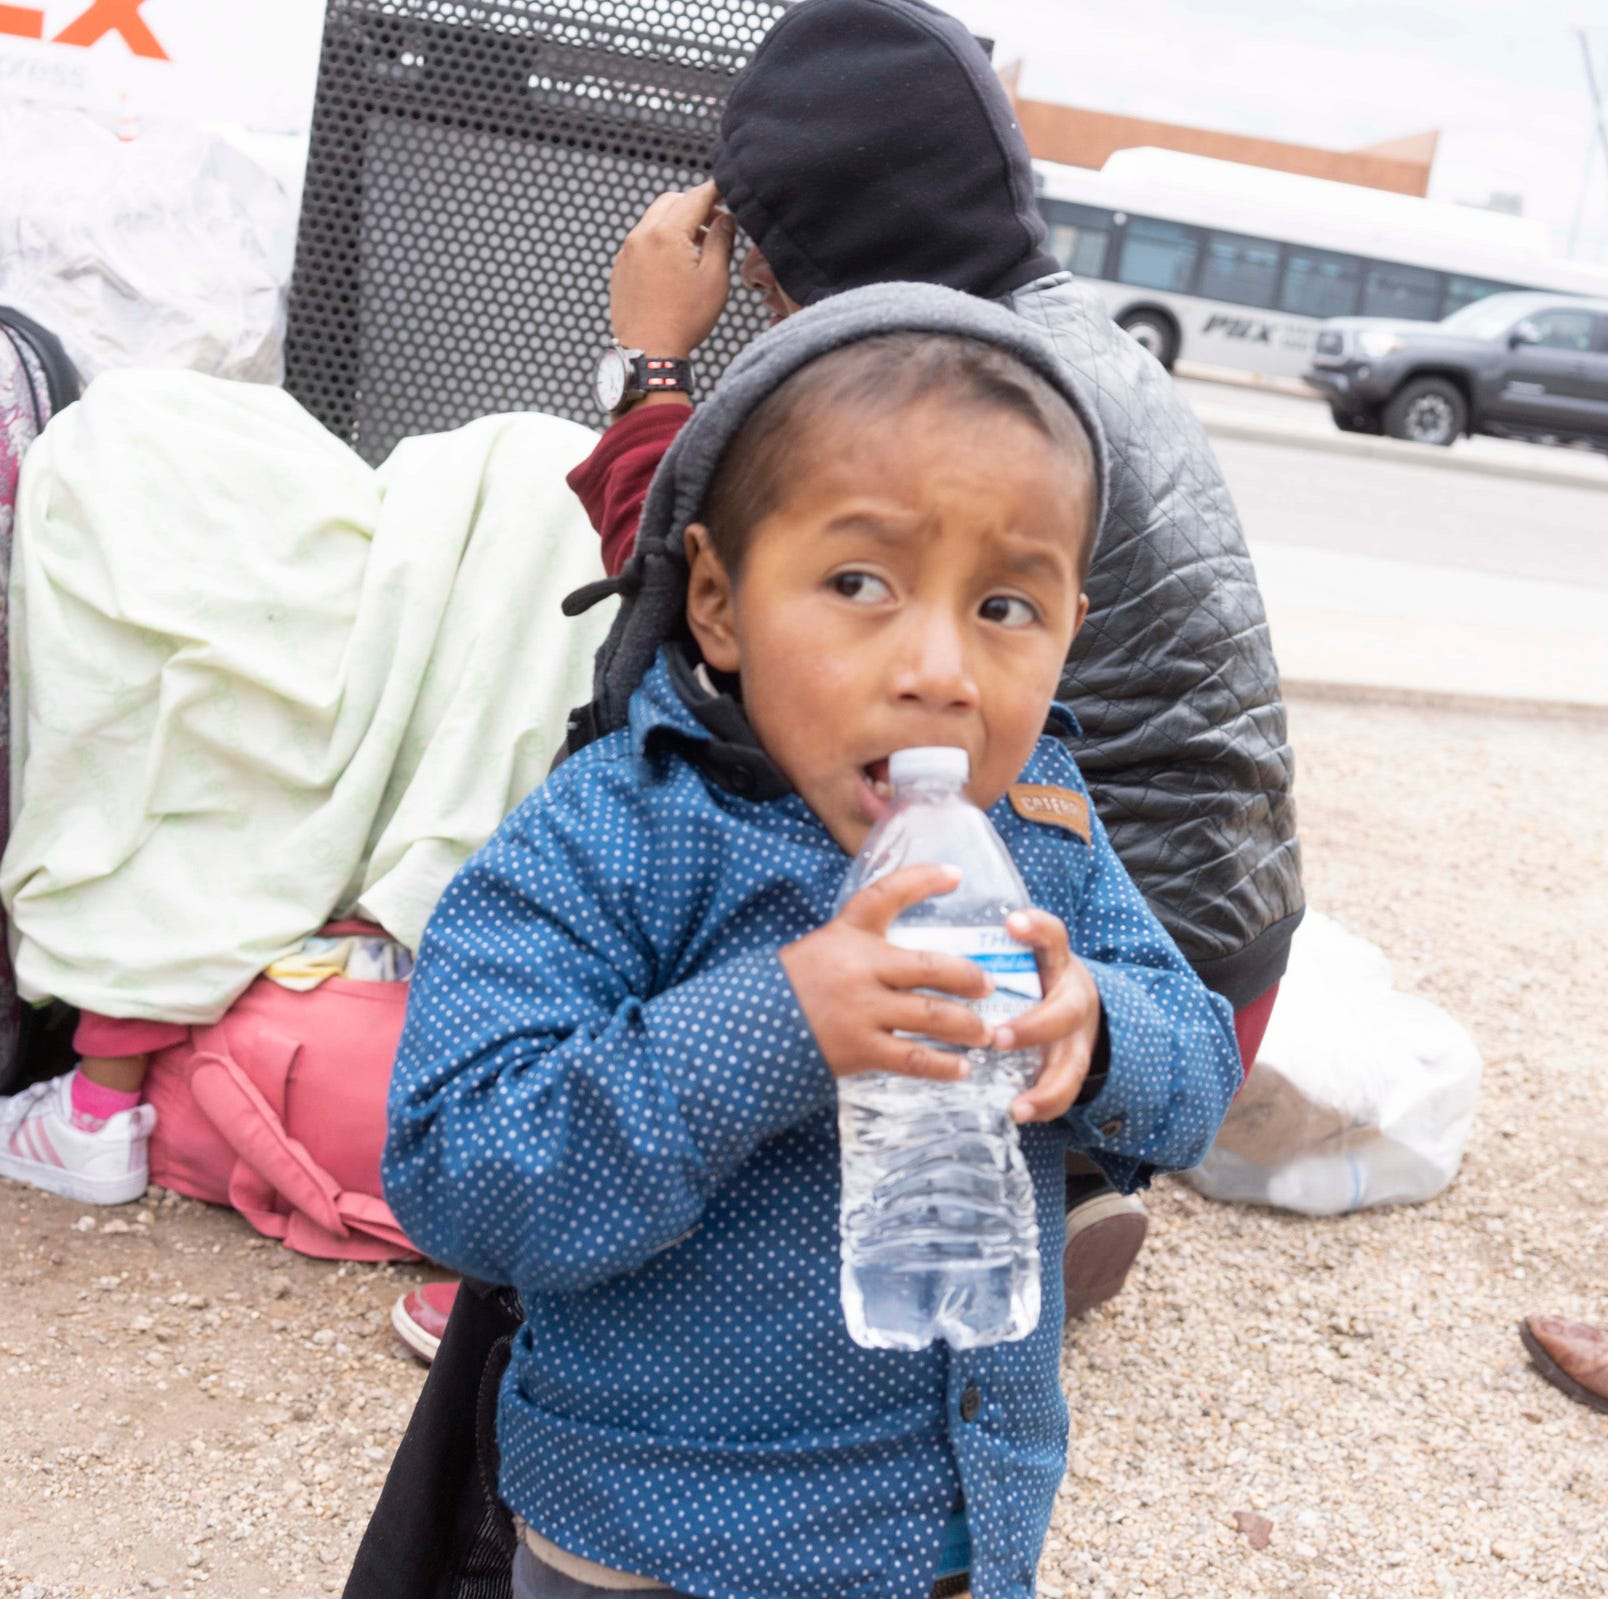 Why are so many migrant families suddenly arriving at the U.S.-Mexico border?